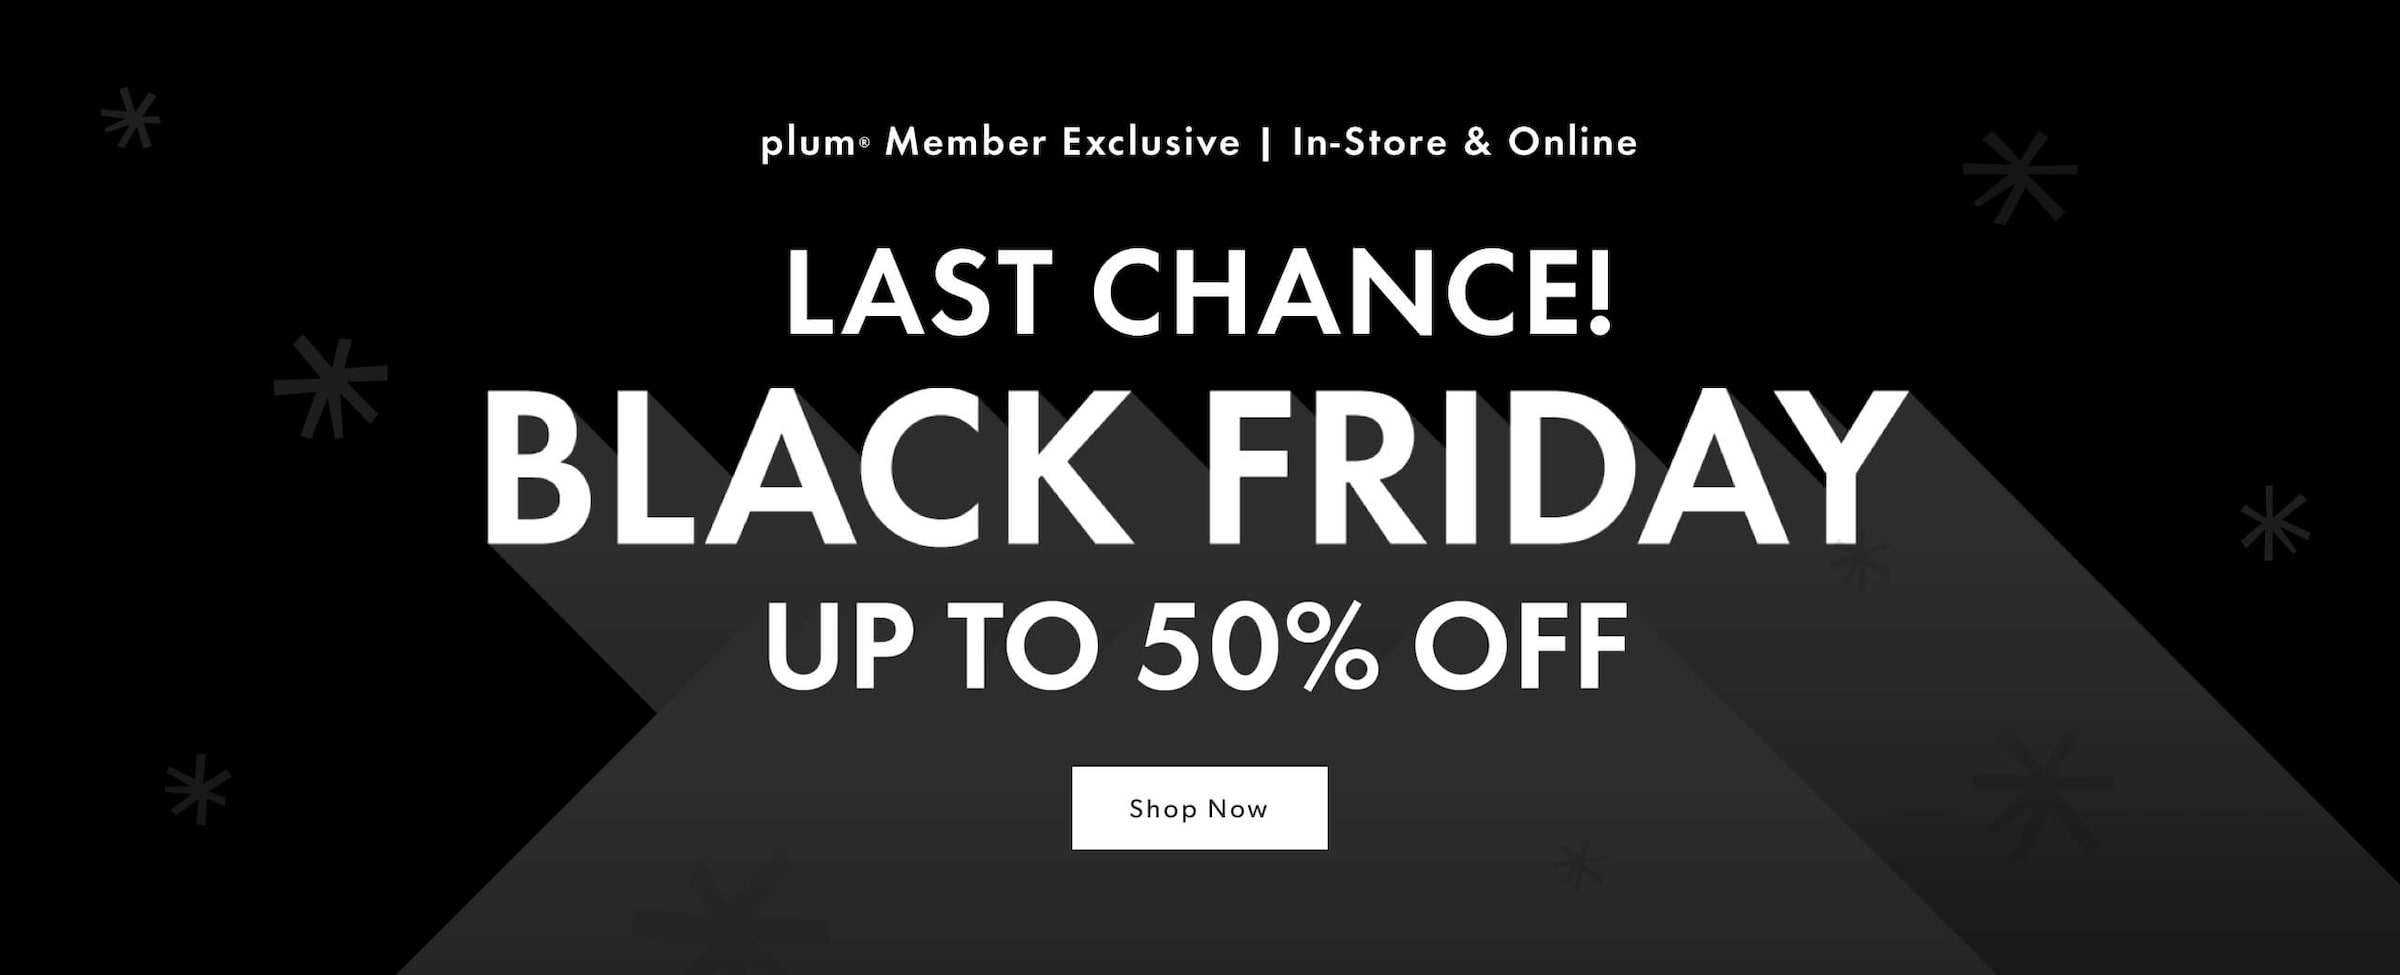 Black Friday Up to 50% Off. plum Member Exclusive. In-Store & Online. Nov 20-29, 2020.